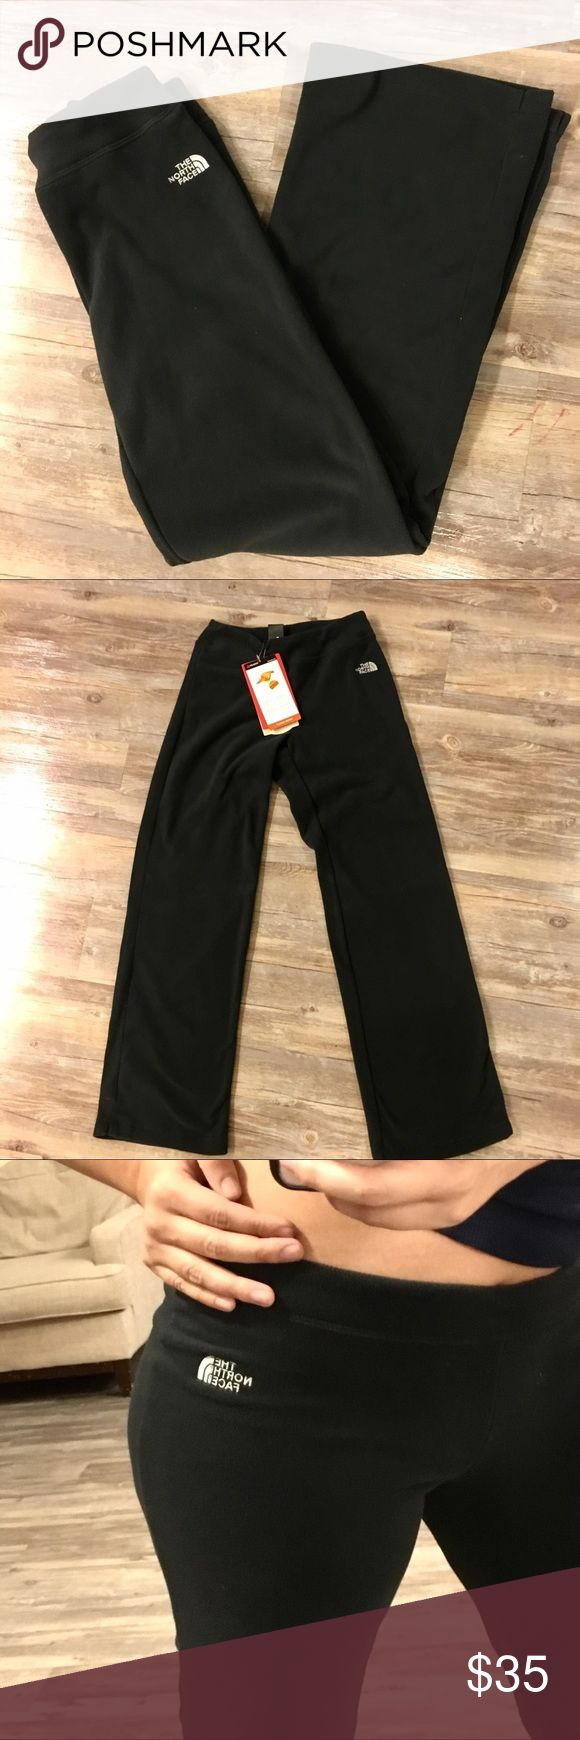 """North Face Polartec Classic Microfiber Pants Super soft pants. Made with microfiber. UPF sun protection. Highly breathable material. Color is a kind of charcoal black. Probably best for a petite woman. I'm 5'9"""", size 6 and they're a little tight and short on me. North Face Pants Track Pants & Joggers"""